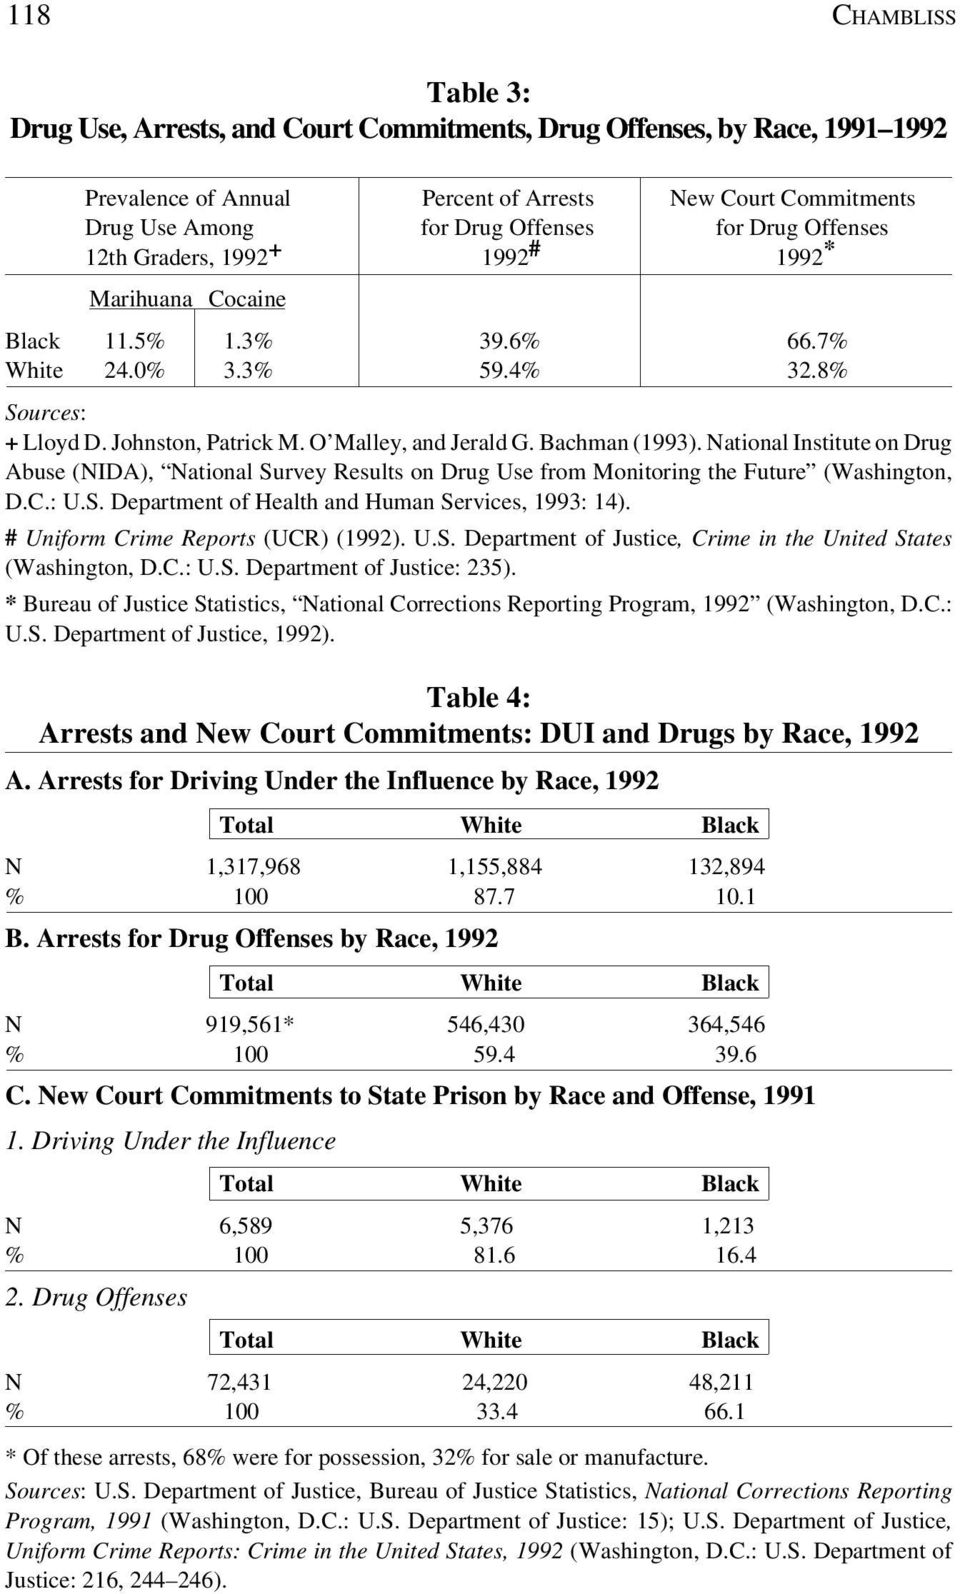 Bachman (1993). National Institute on Drug Abuse (NIDA), National Survey Results on Drug Use from Monitoring the Future (Washington, D.C.: U.S. Department of Health and Human Services, 1993: 14).